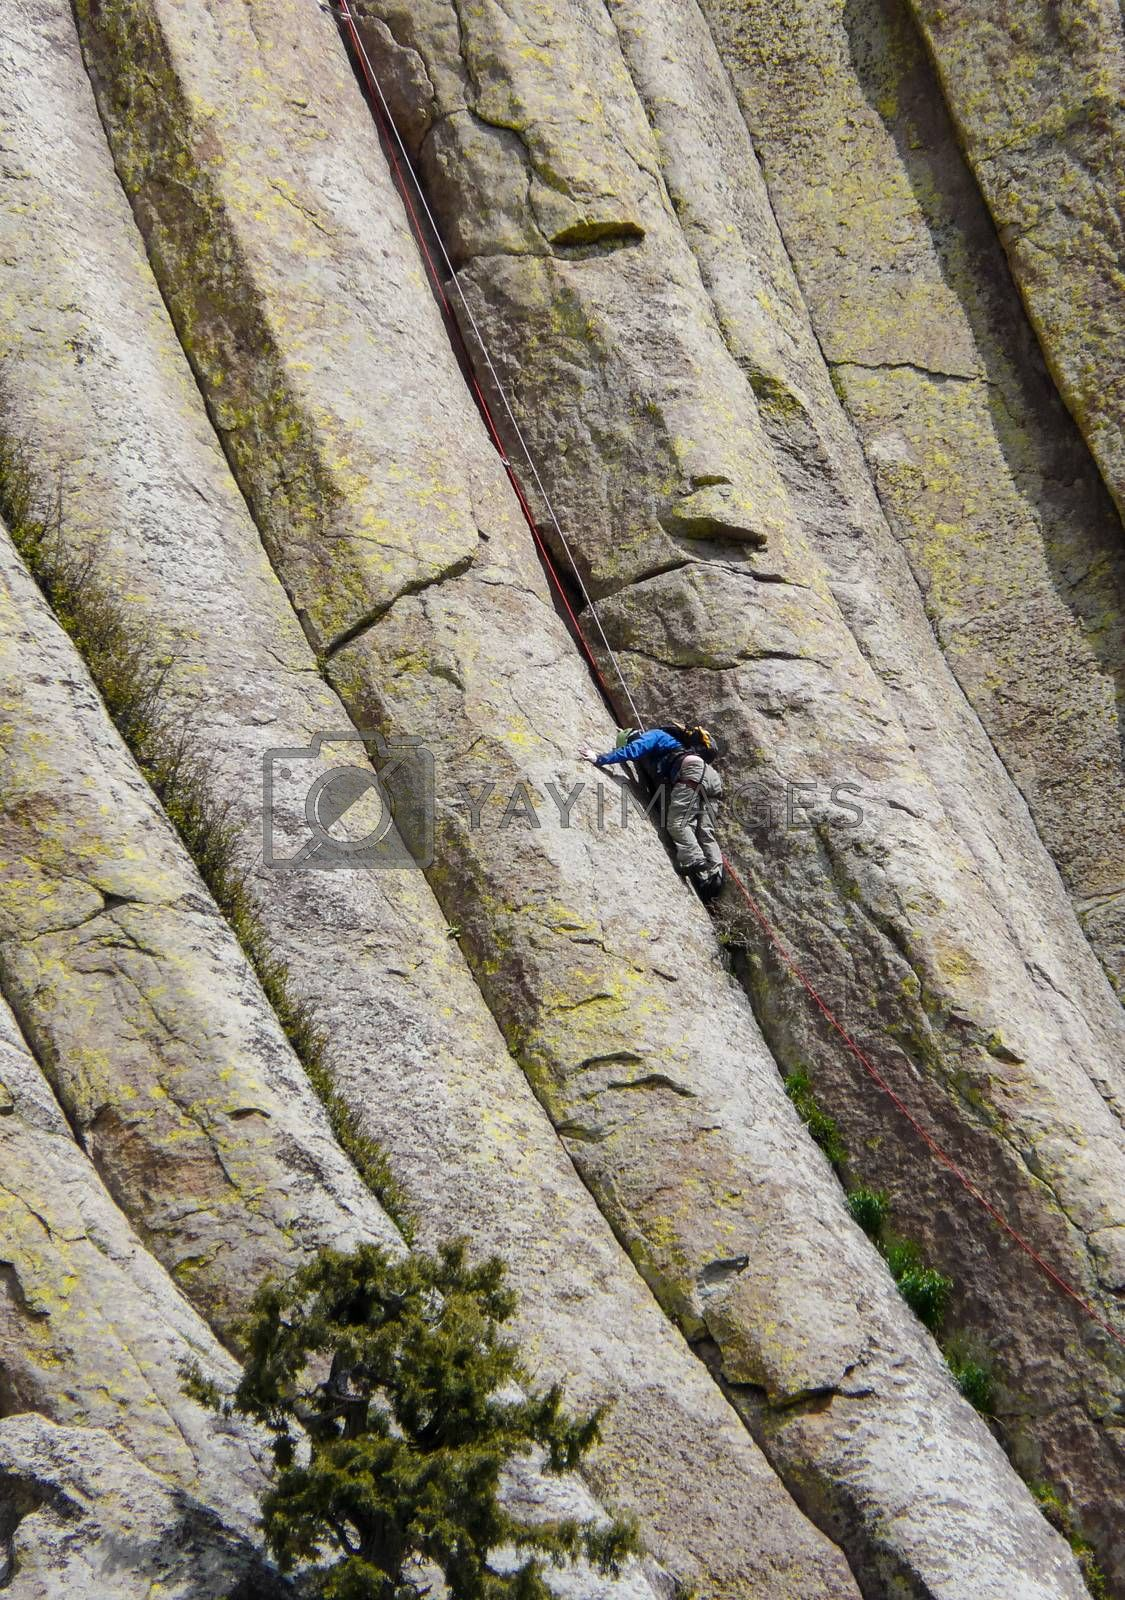 Devils Tower, Wyoming, USA - May 11, 2008: Man climbing on the wall of famous mountain Devils Tower in the Black Hills (Wyoming).